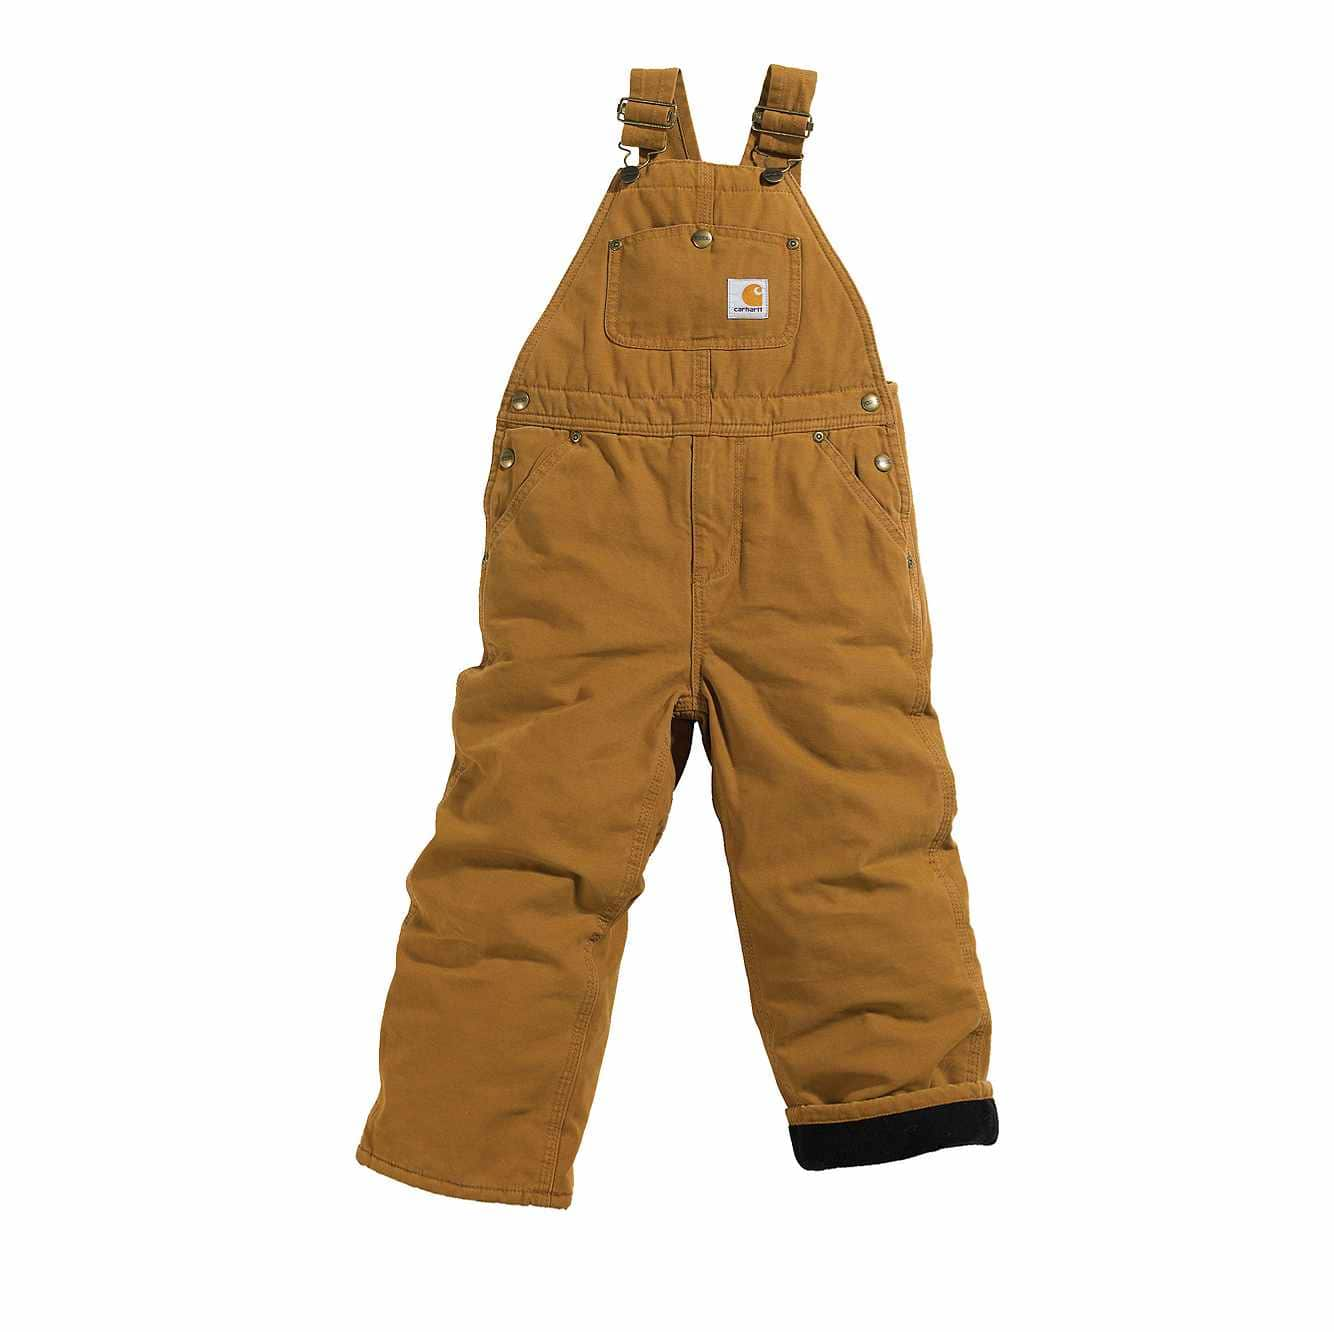 Picture of Canvas Overall Quilt-Lined Sizes 4-7 in Carhartt Brown